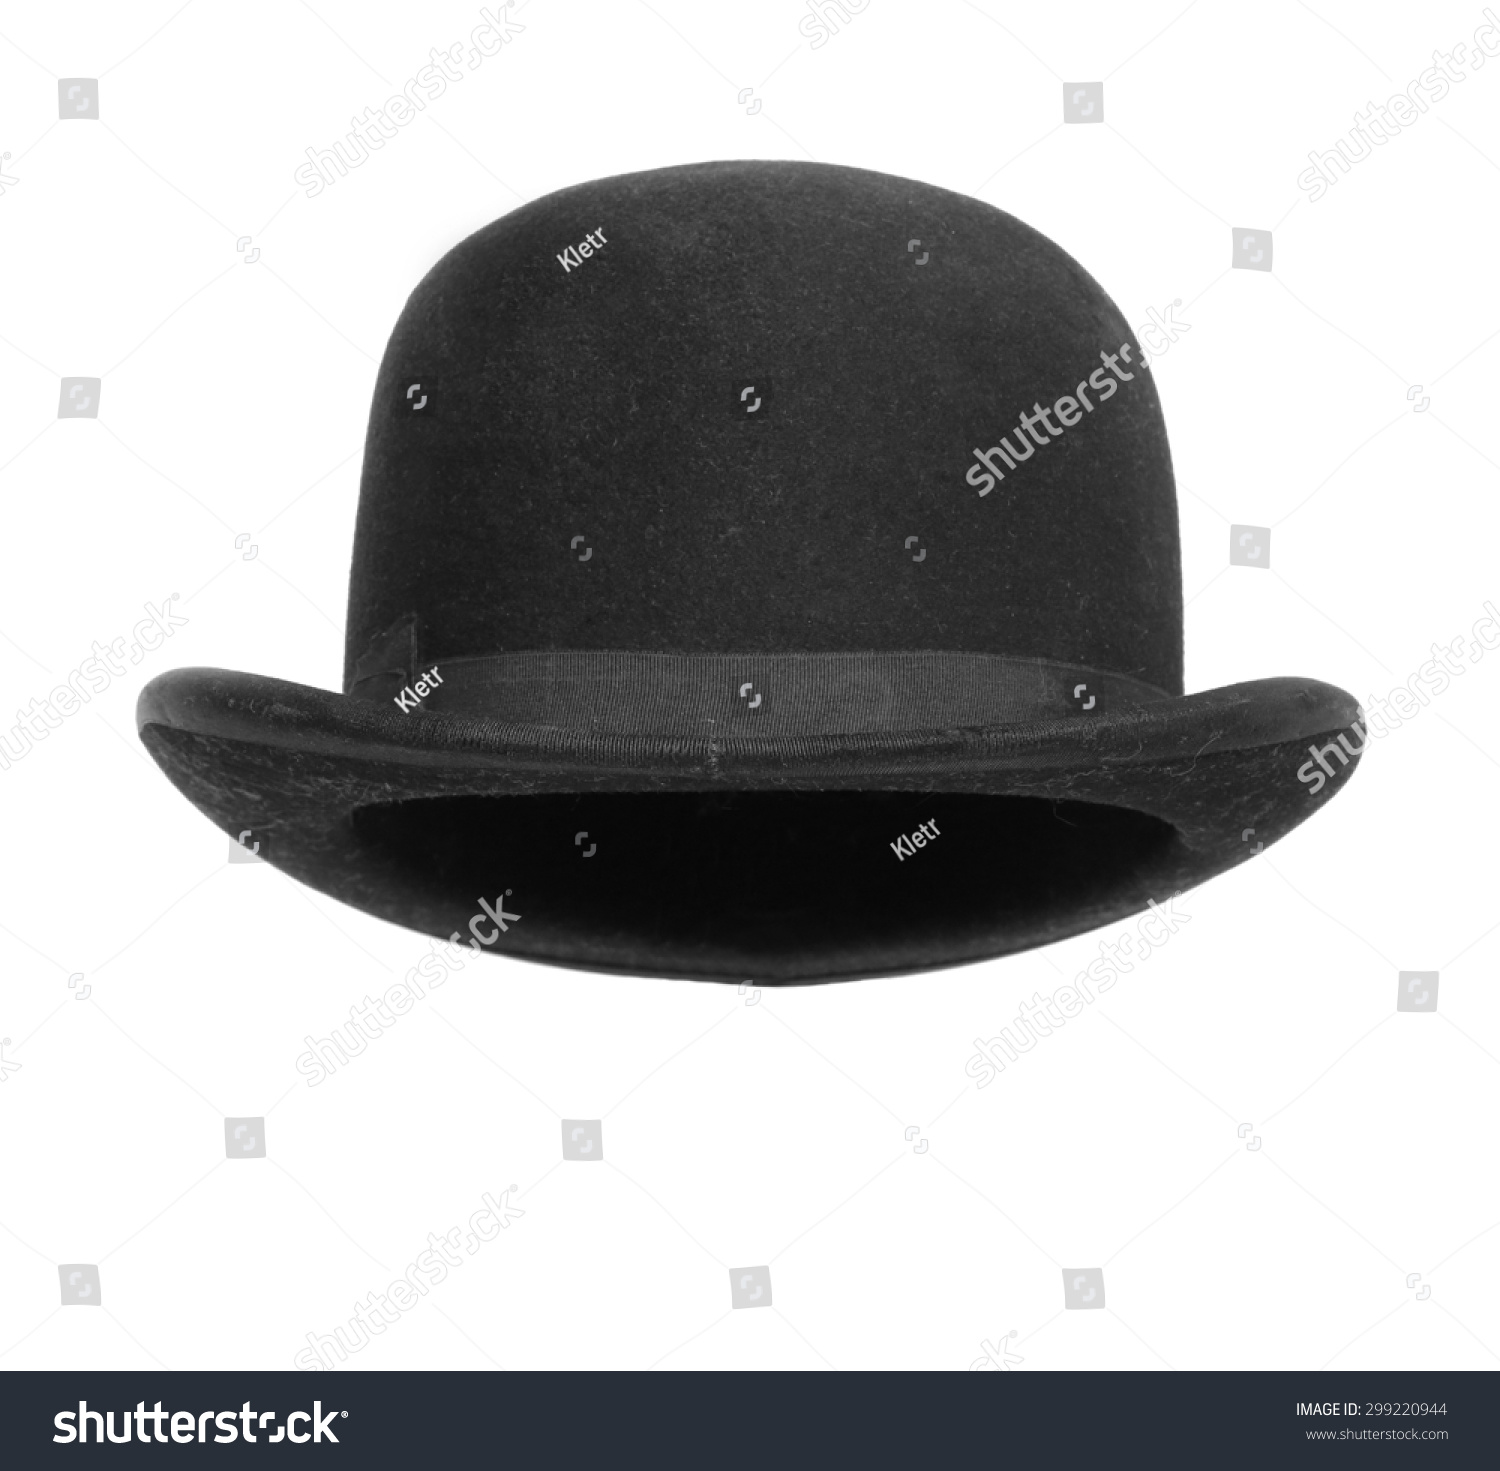 16d4eb340e9 Black Bowler Hat Isolated On White Stock Photo (Edit Now) 299220944 ...